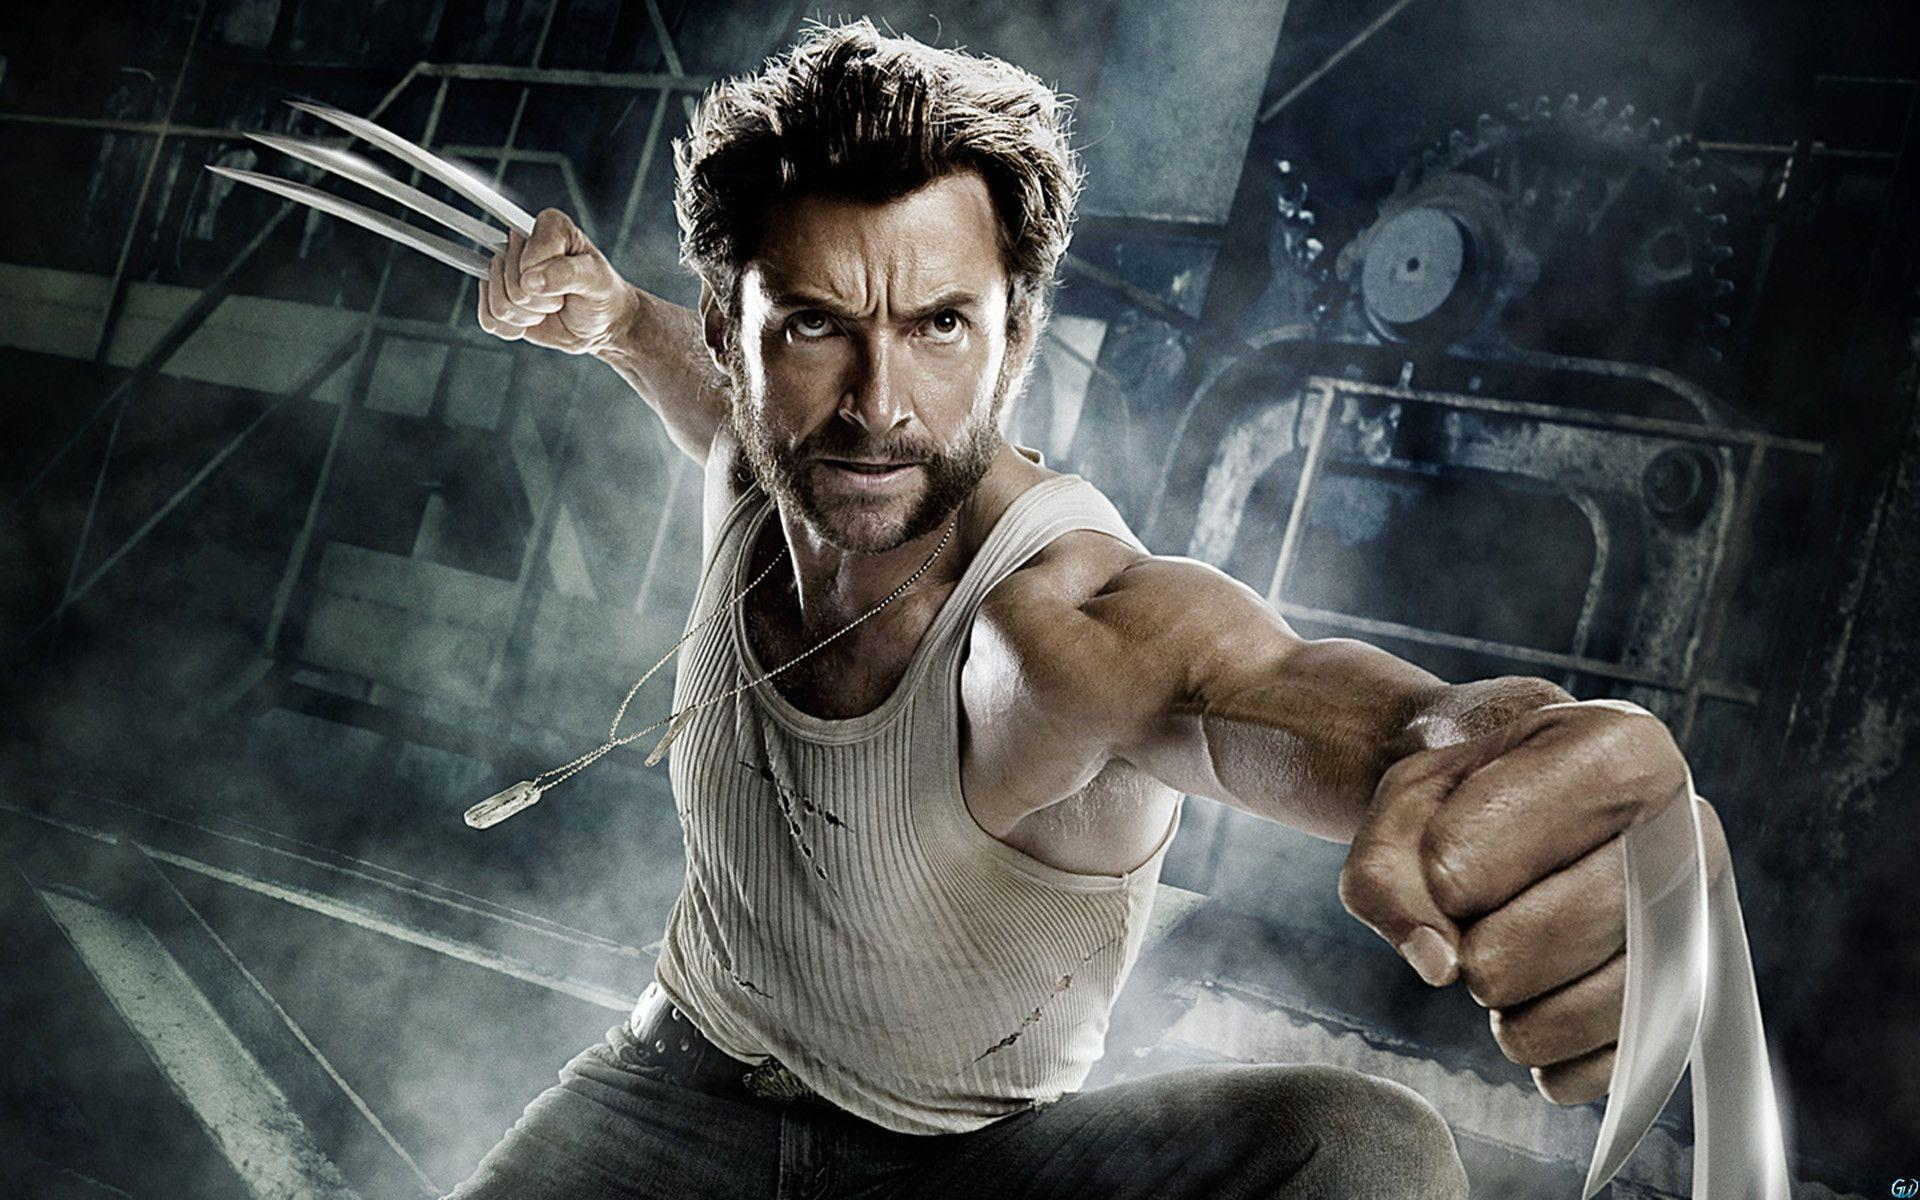 Wolverine wallpapers hd wallpaper cave most downloaded hugh jackman wallpapers full hd wallpaper search voltagebd Images